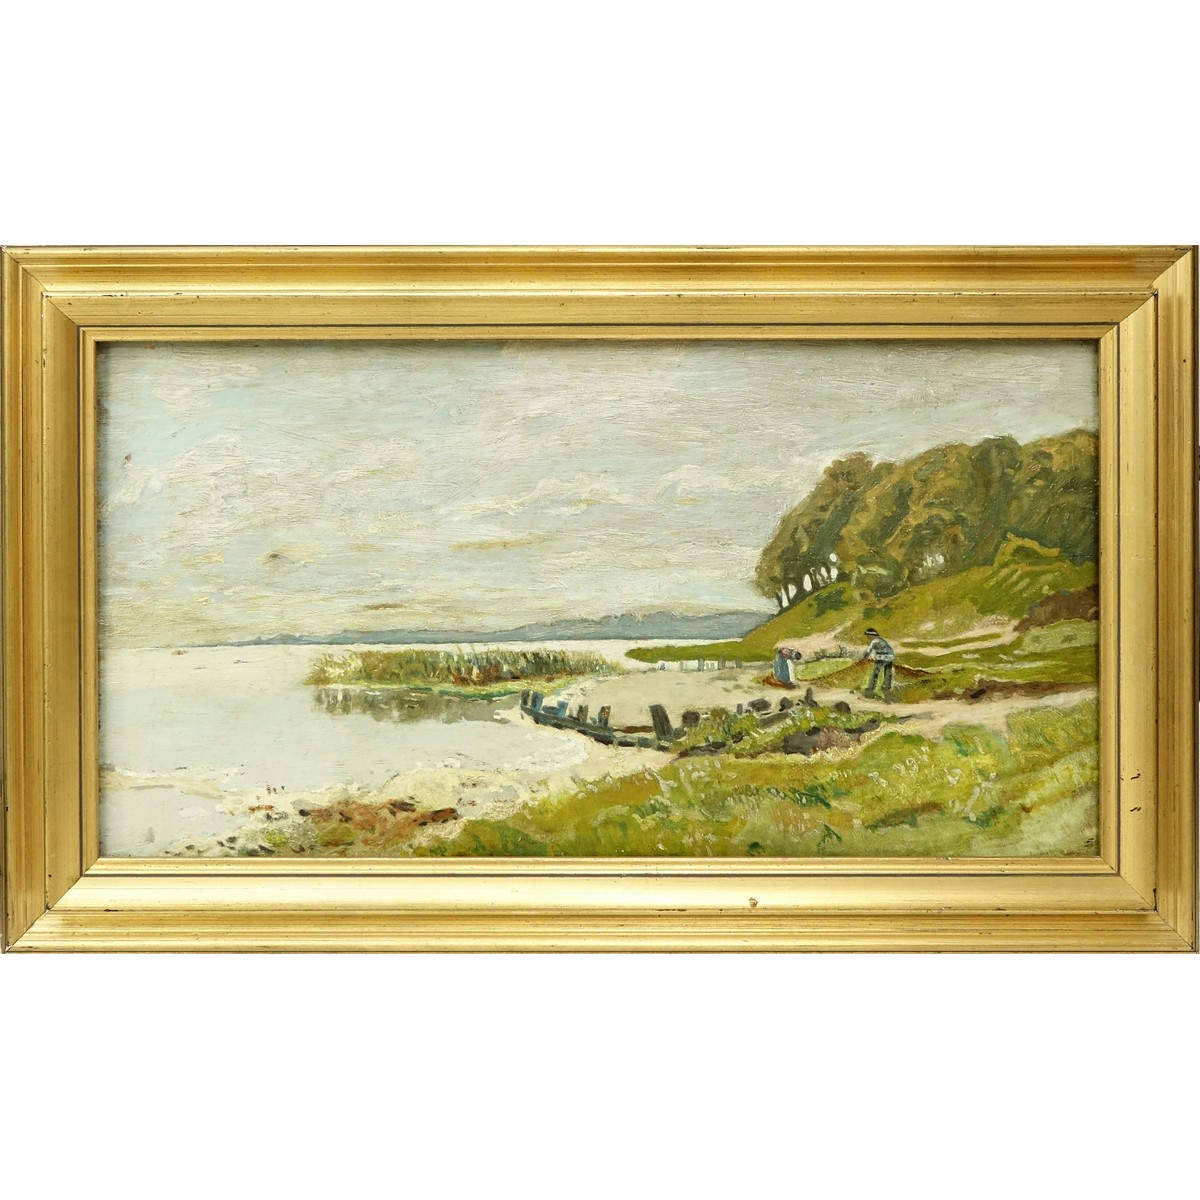 "In The Style Of Charles Francois Daubigny, French (1817 - 1878). Oil painting on board ""Waterside""."